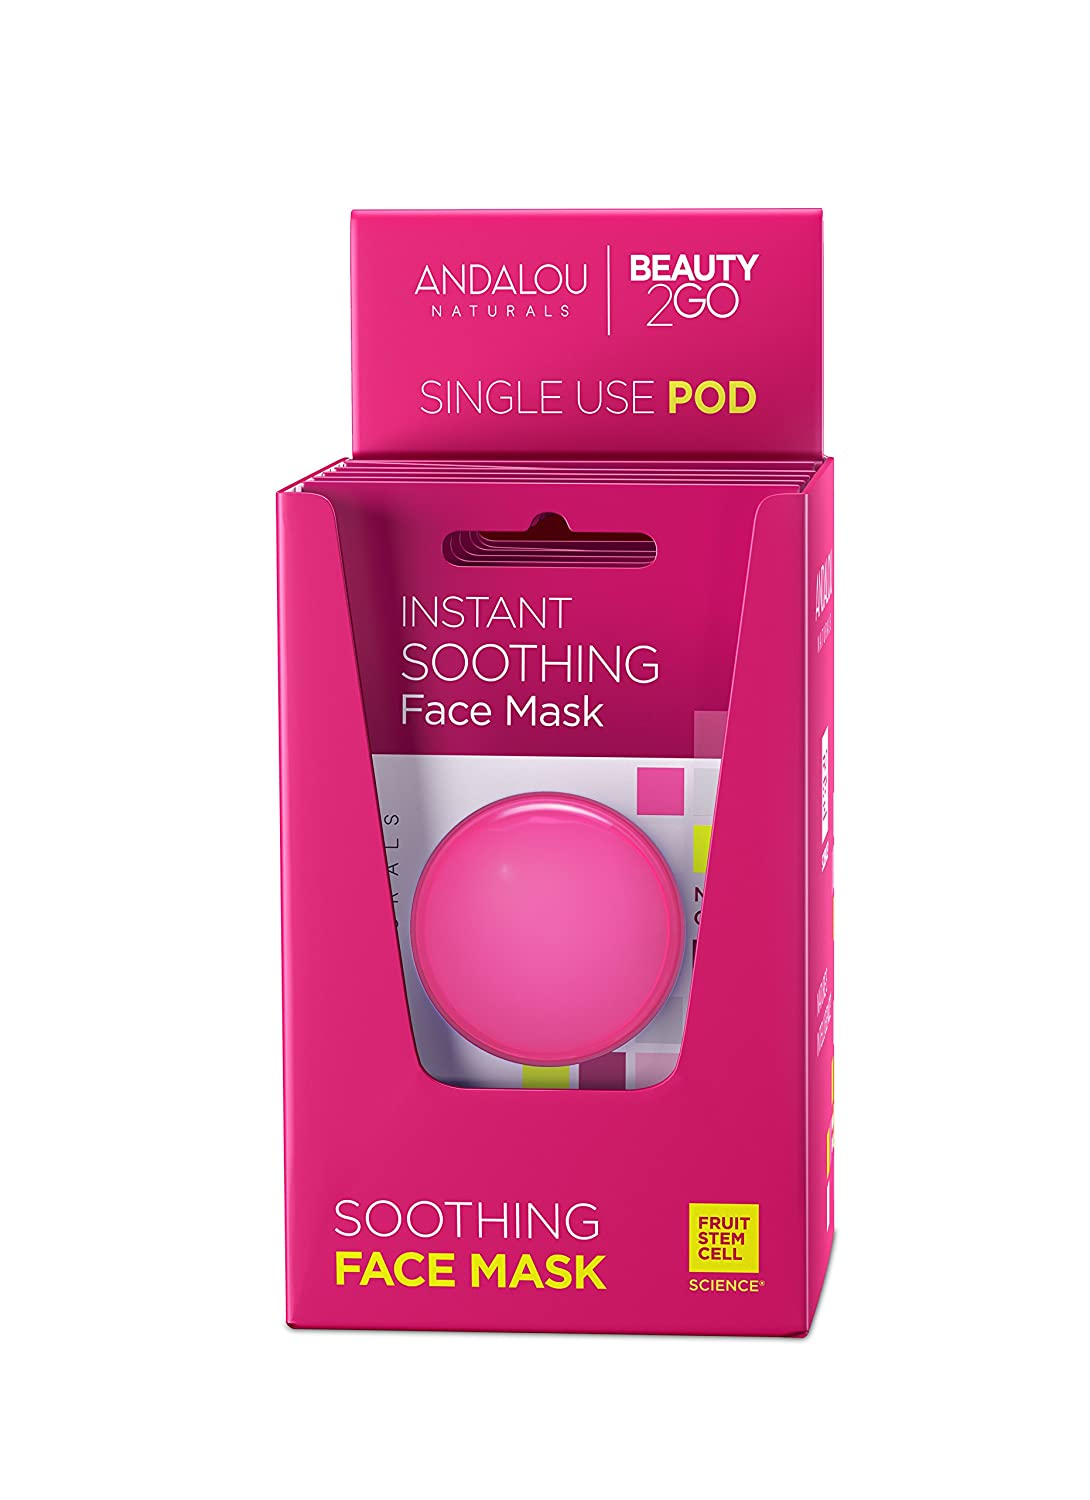 Andalou Naturals Instant Soothing 1000 Roses Rosewater Face Mask Pod, Single Face Mask, 0.28 Ounce (Pack of 6)